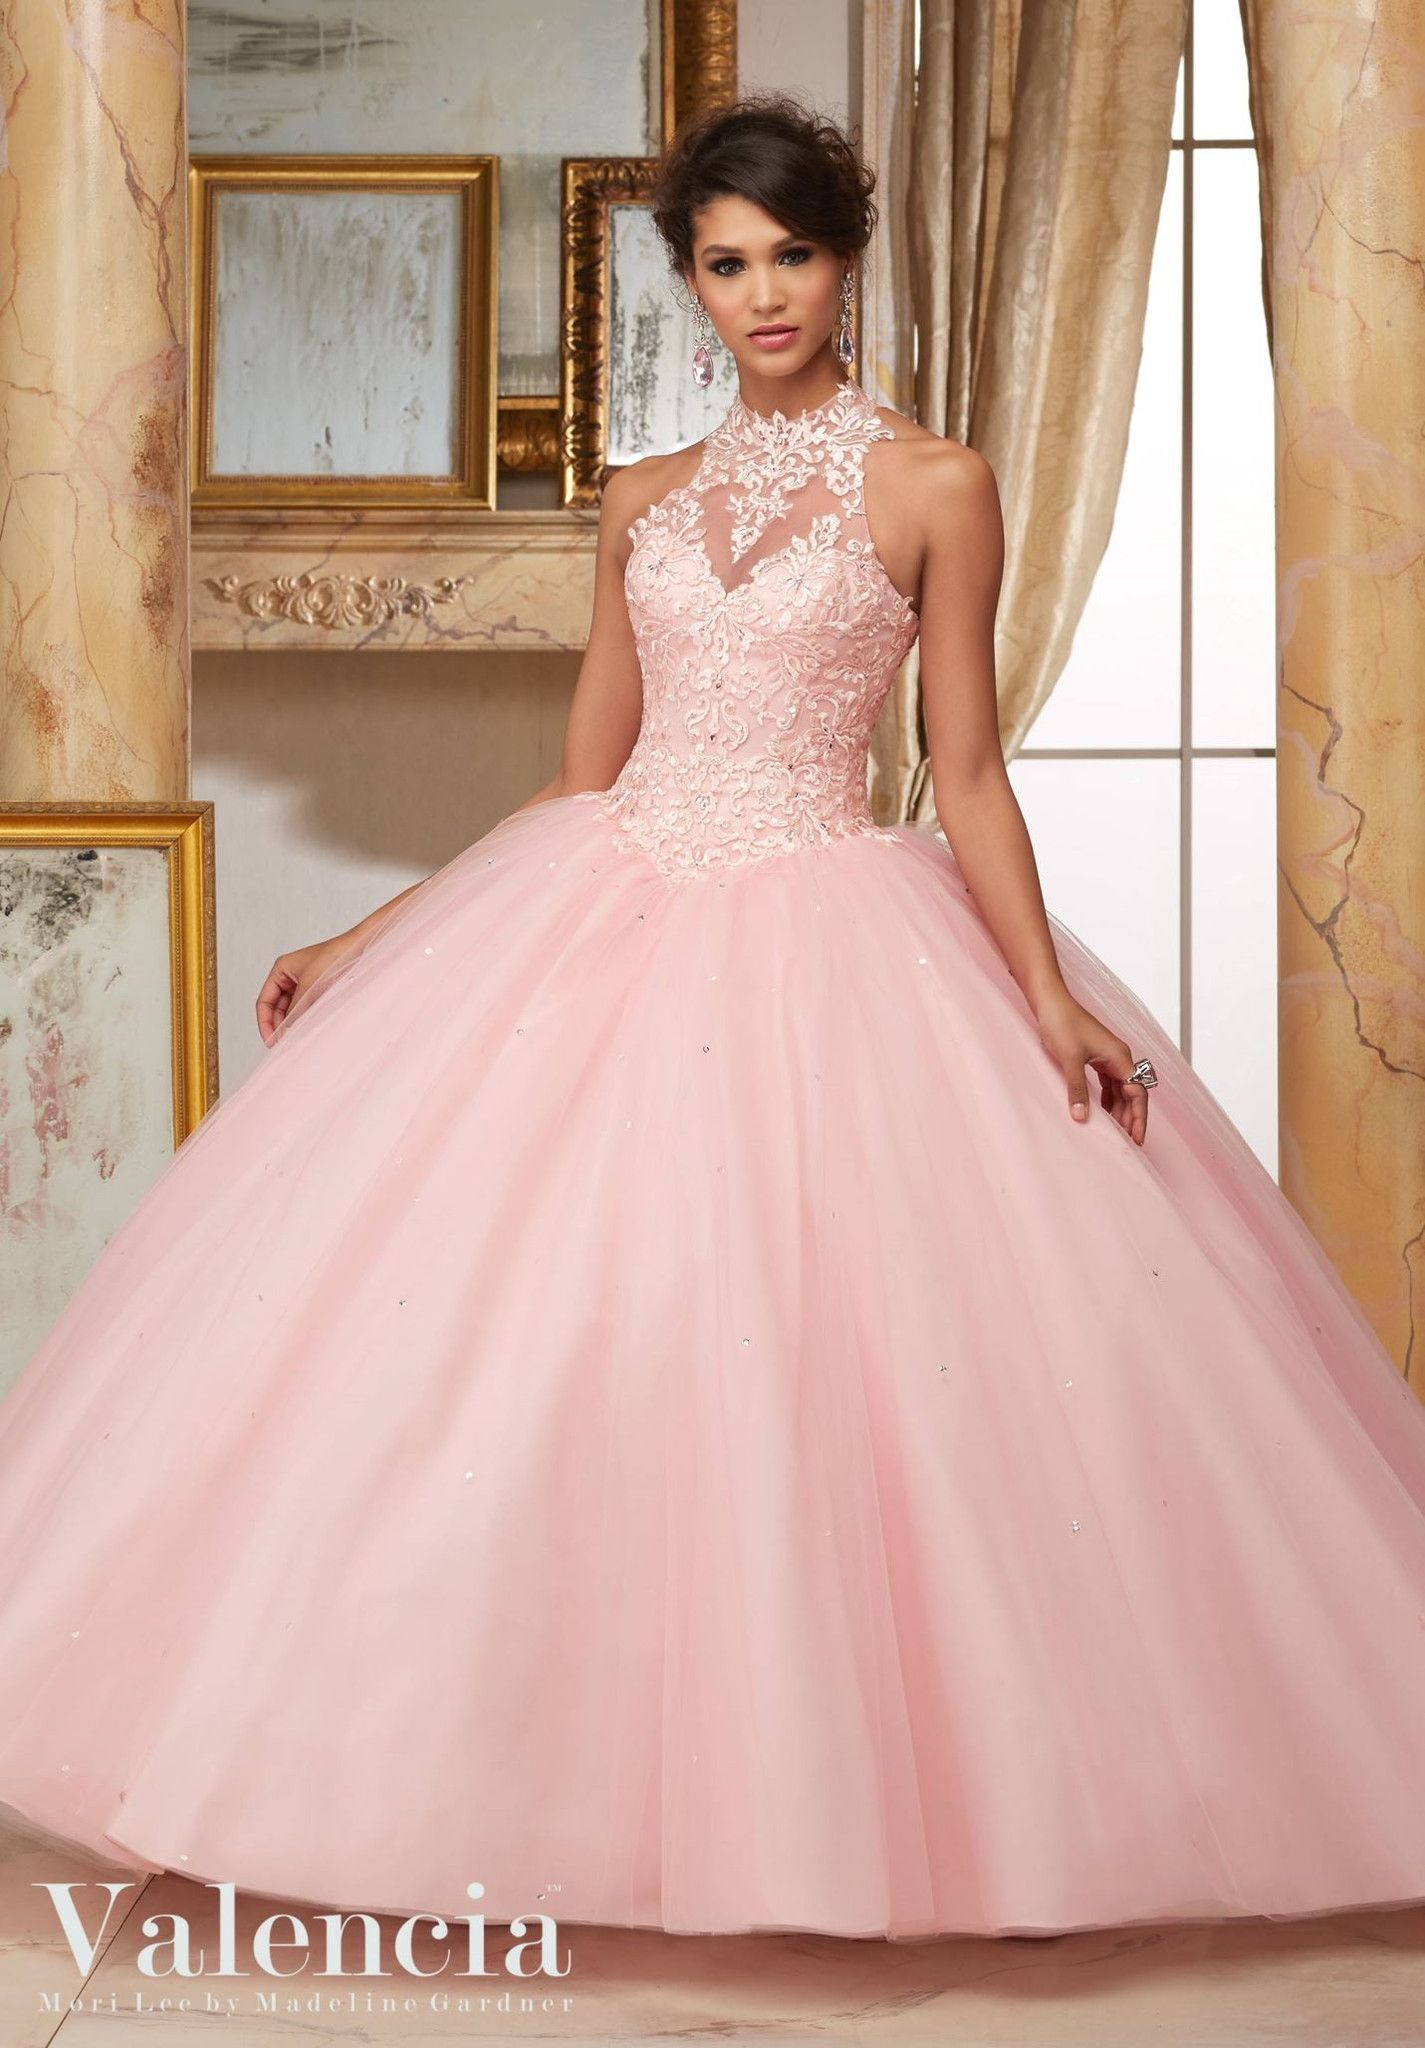 Mori Lee Valencia Quinceanera Dress 60004 | Quinceañera, Vestiditos ...